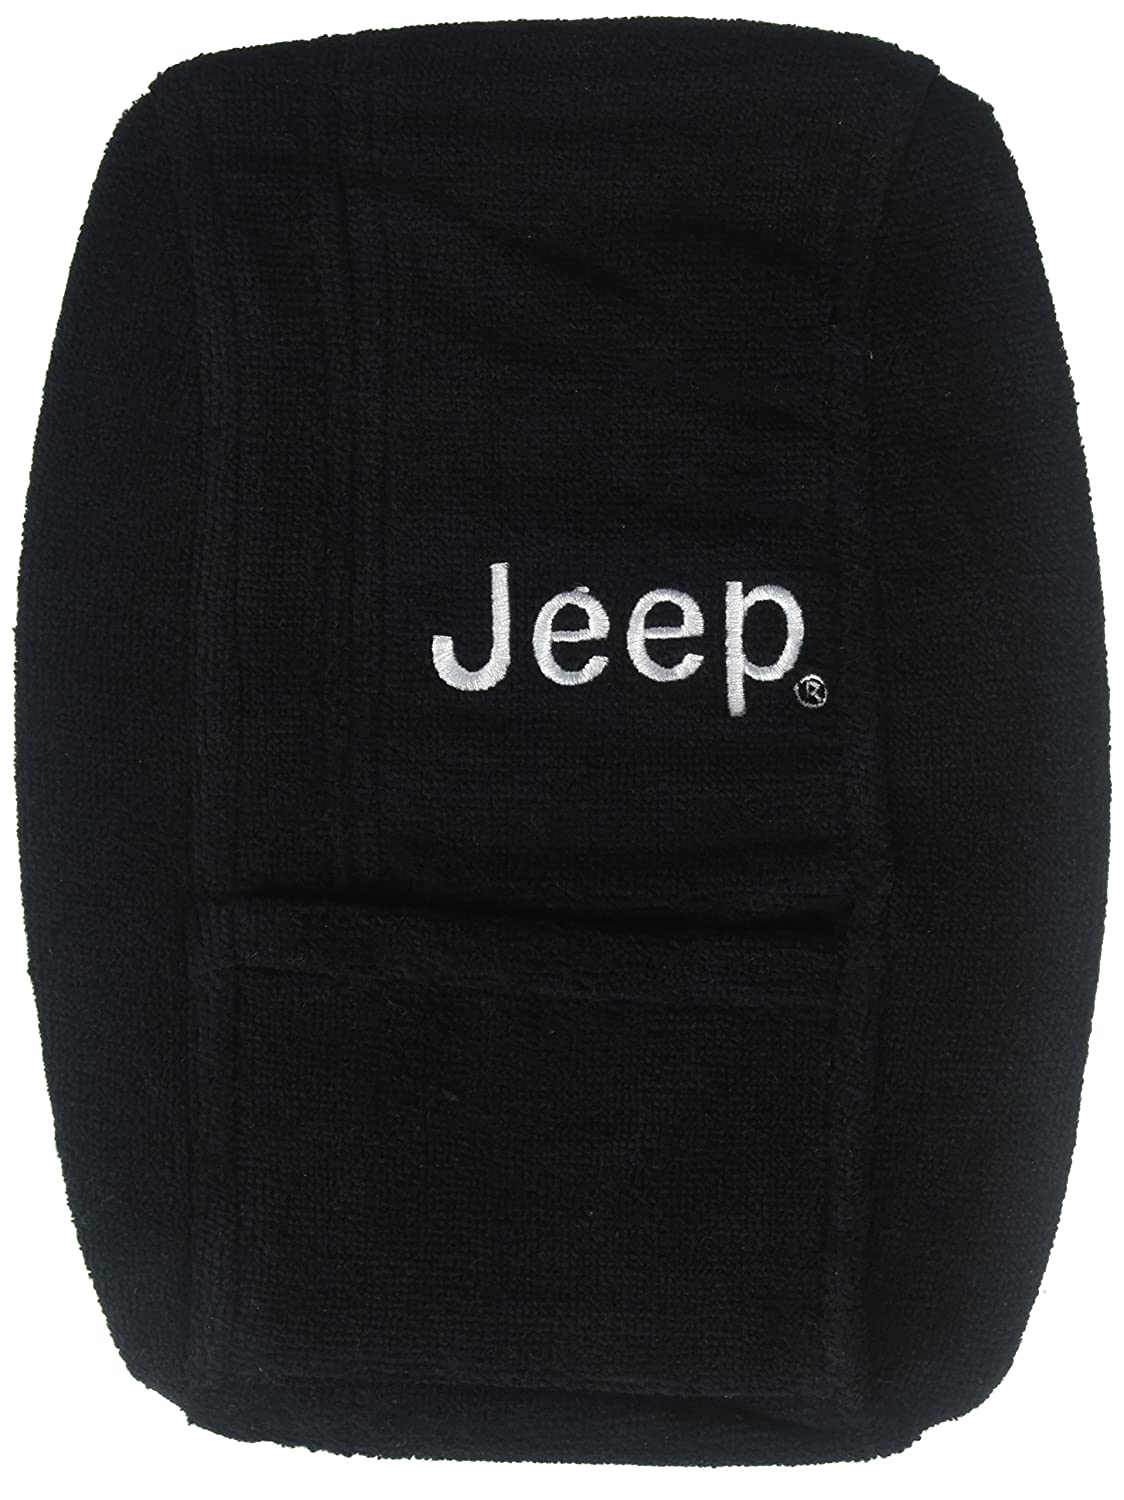 Black Seat Armour Officially Licensed Custom Fit Center Console Cover with Jeep Embroidered Logo for Select Jeep Wrangler Models KAJWB97-00